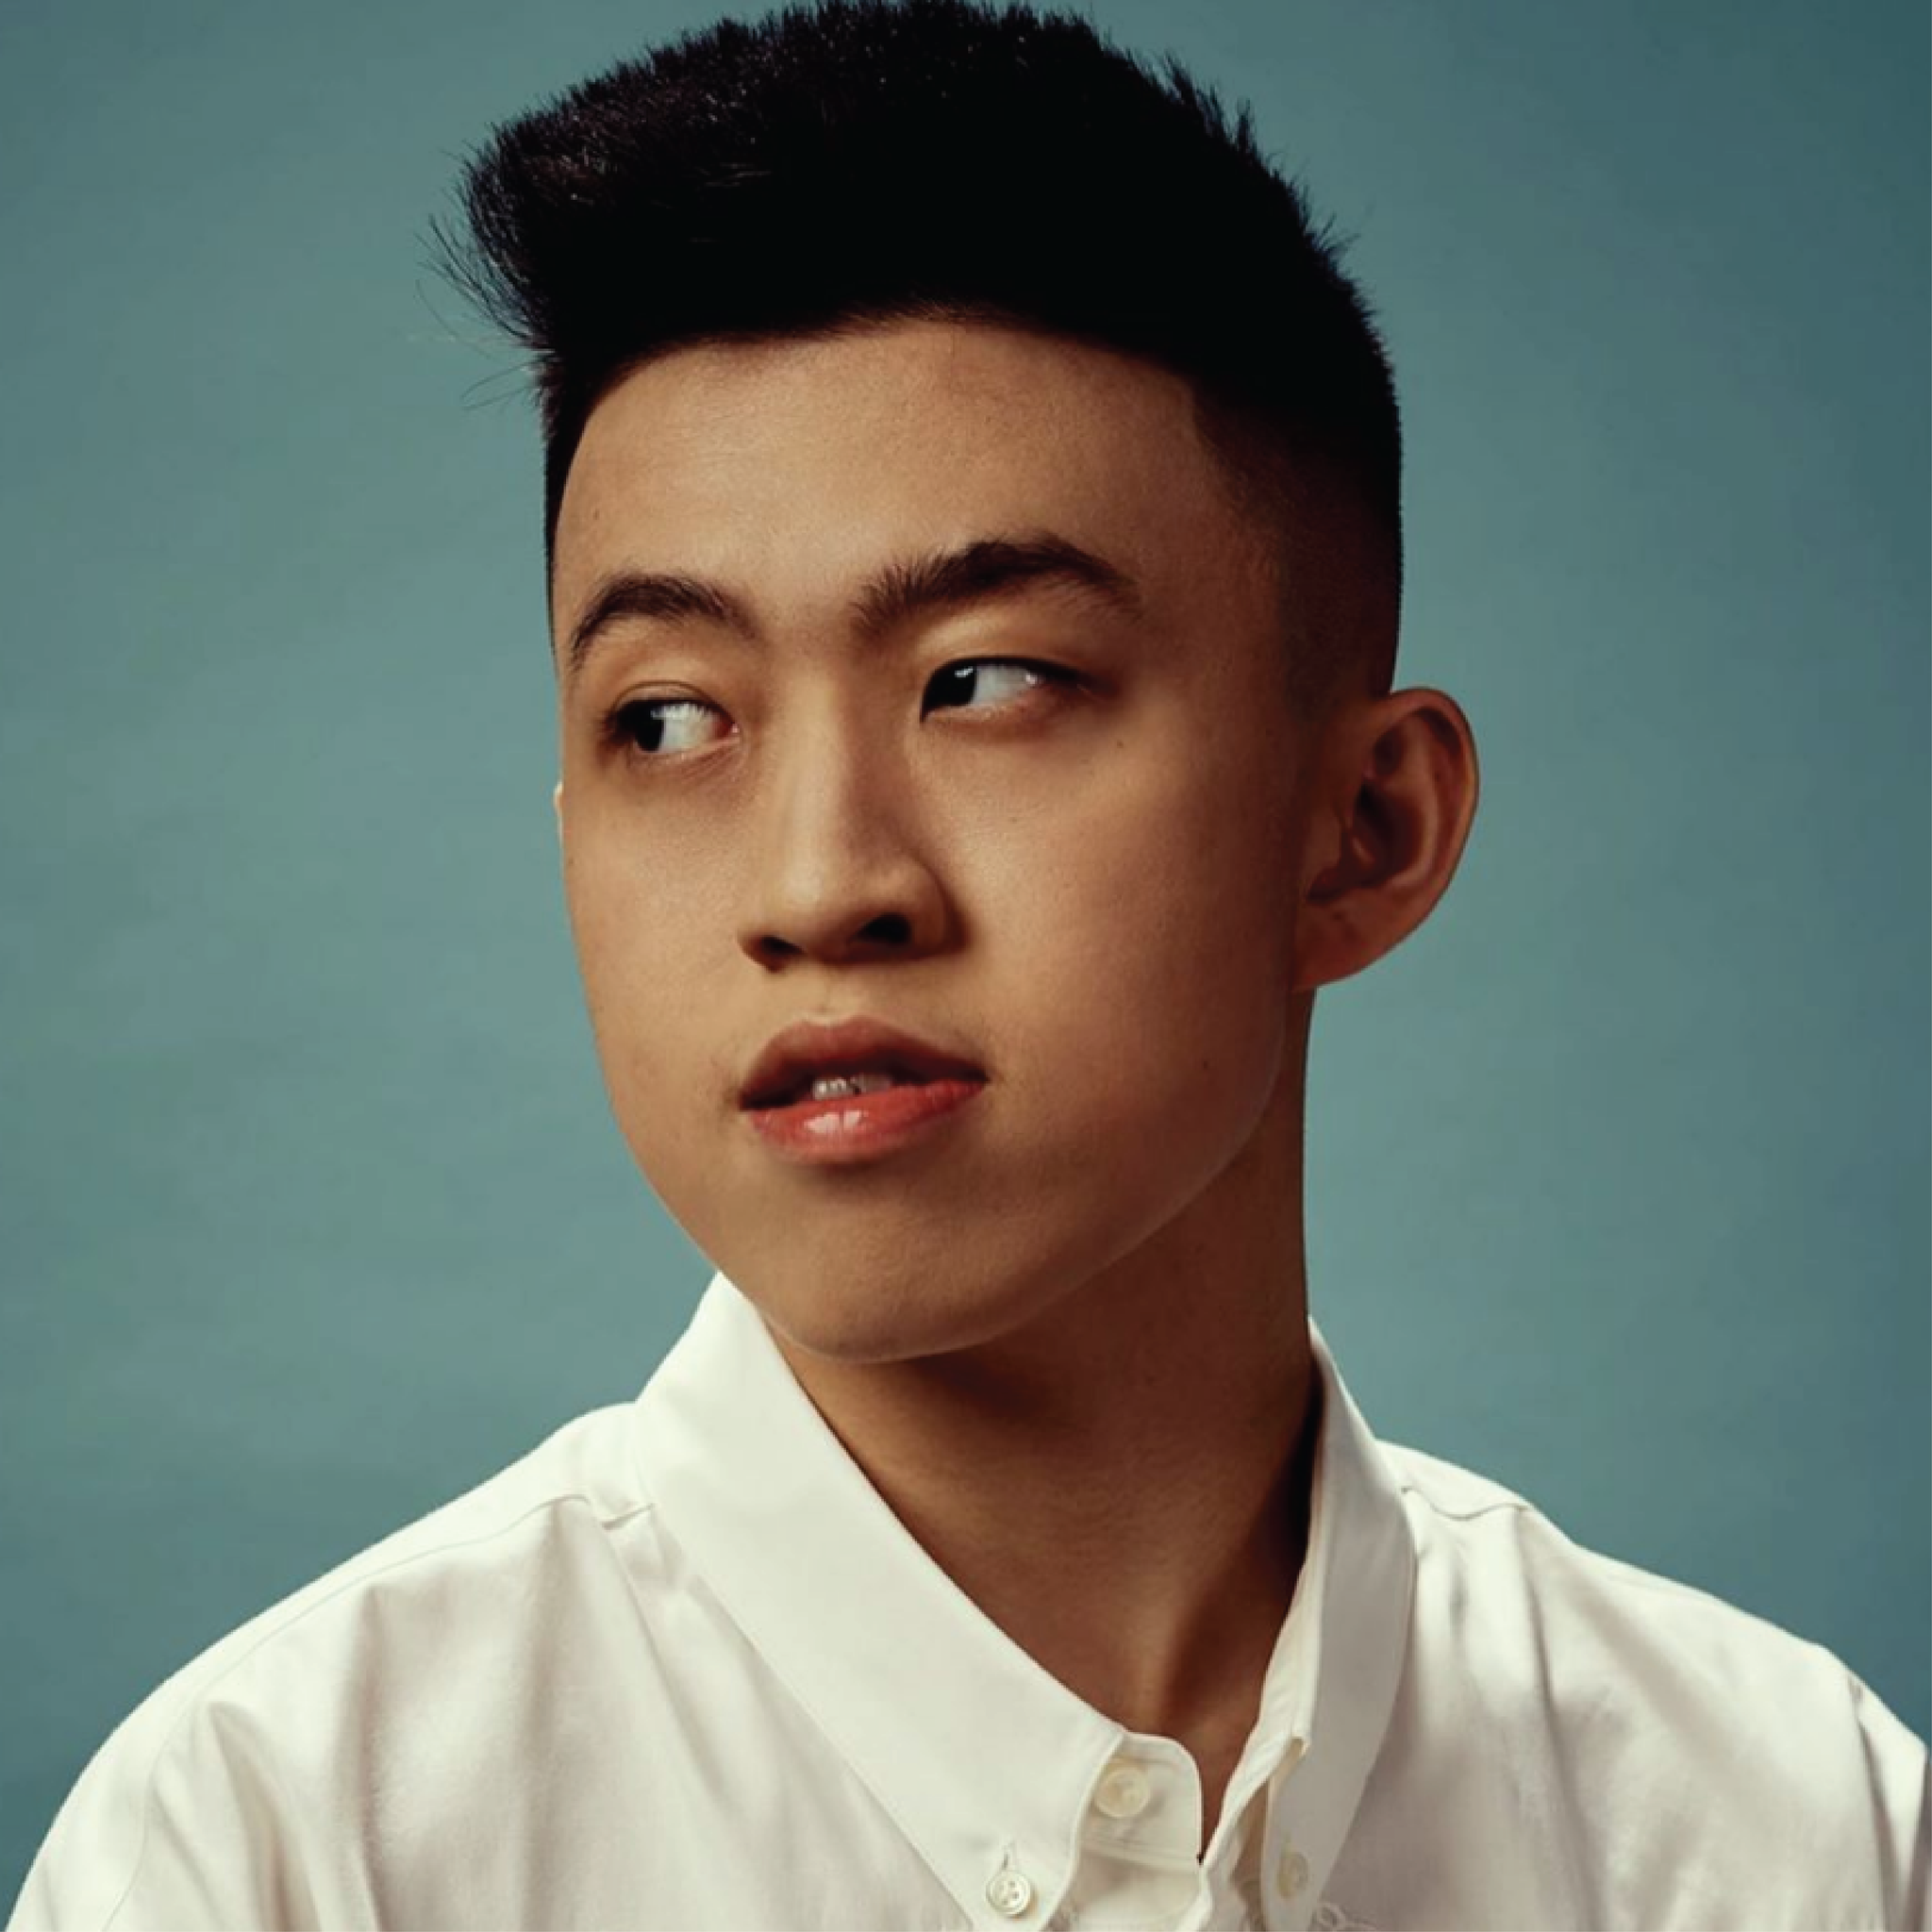 WHAT'S RICH ABOUT RICH BRIAN